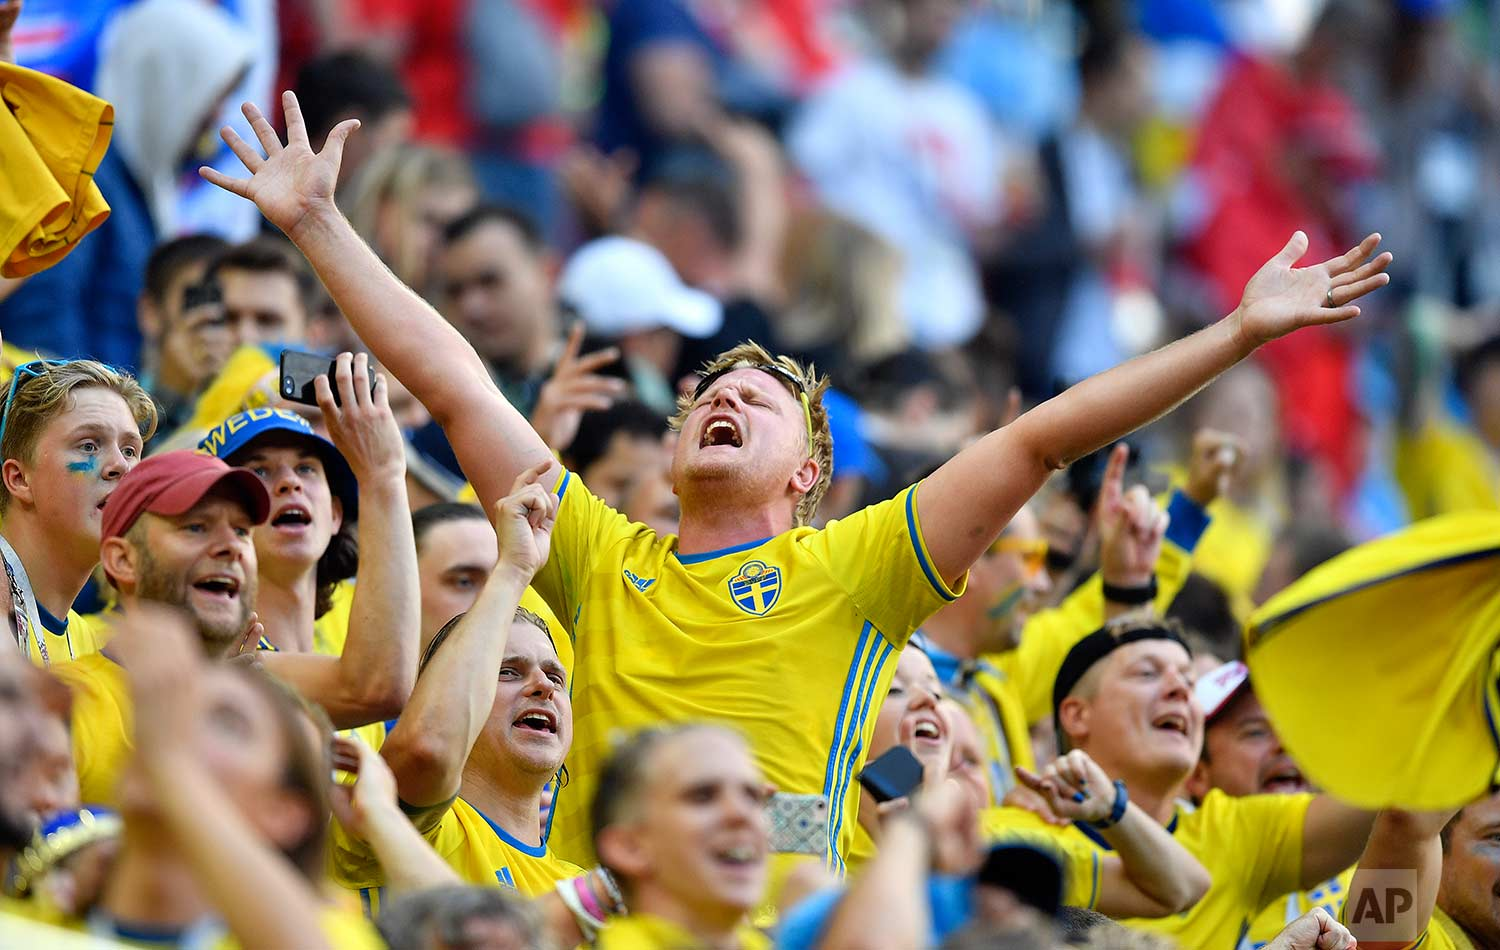 Sweden supporters celebrate after their team won the round of 16 match between Switzerland and Sweden at the 2018 soccer World Cup in the St. Petersburg Stadium, in St. Petersburg, Russia, Tuesday, July 3, 2018. (AP Photo/Martin Meissner)